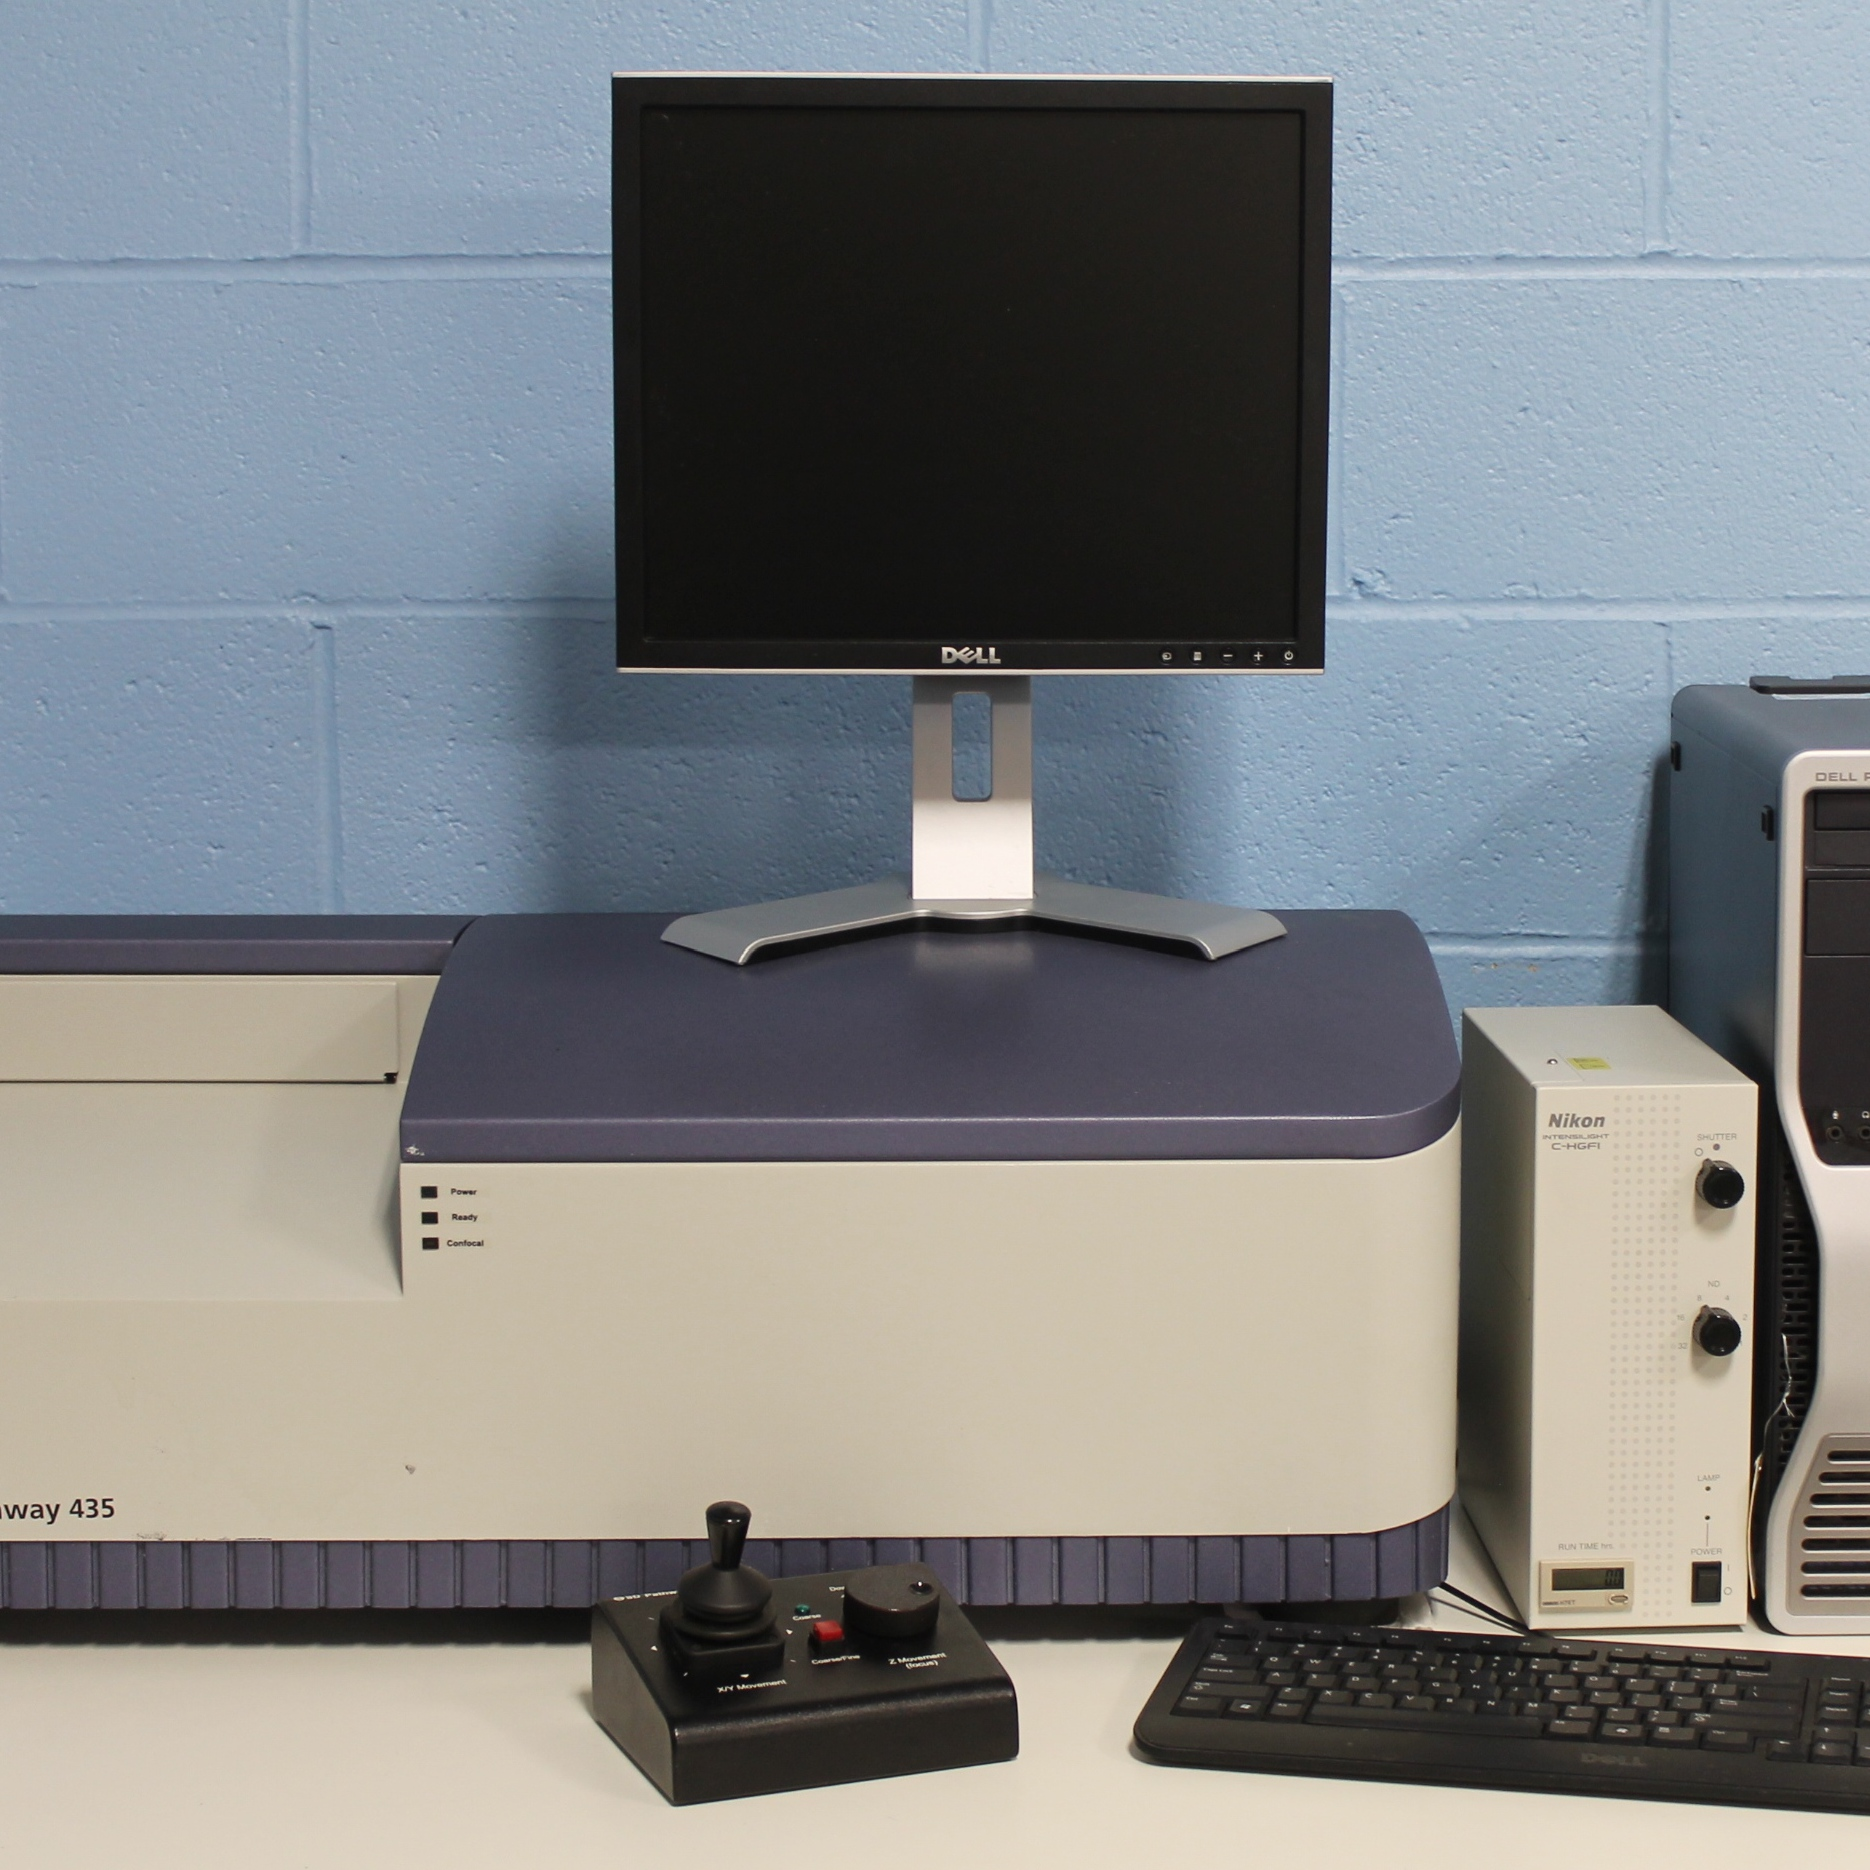 BD Biosciences Pathway 435 Bioimaging System Image